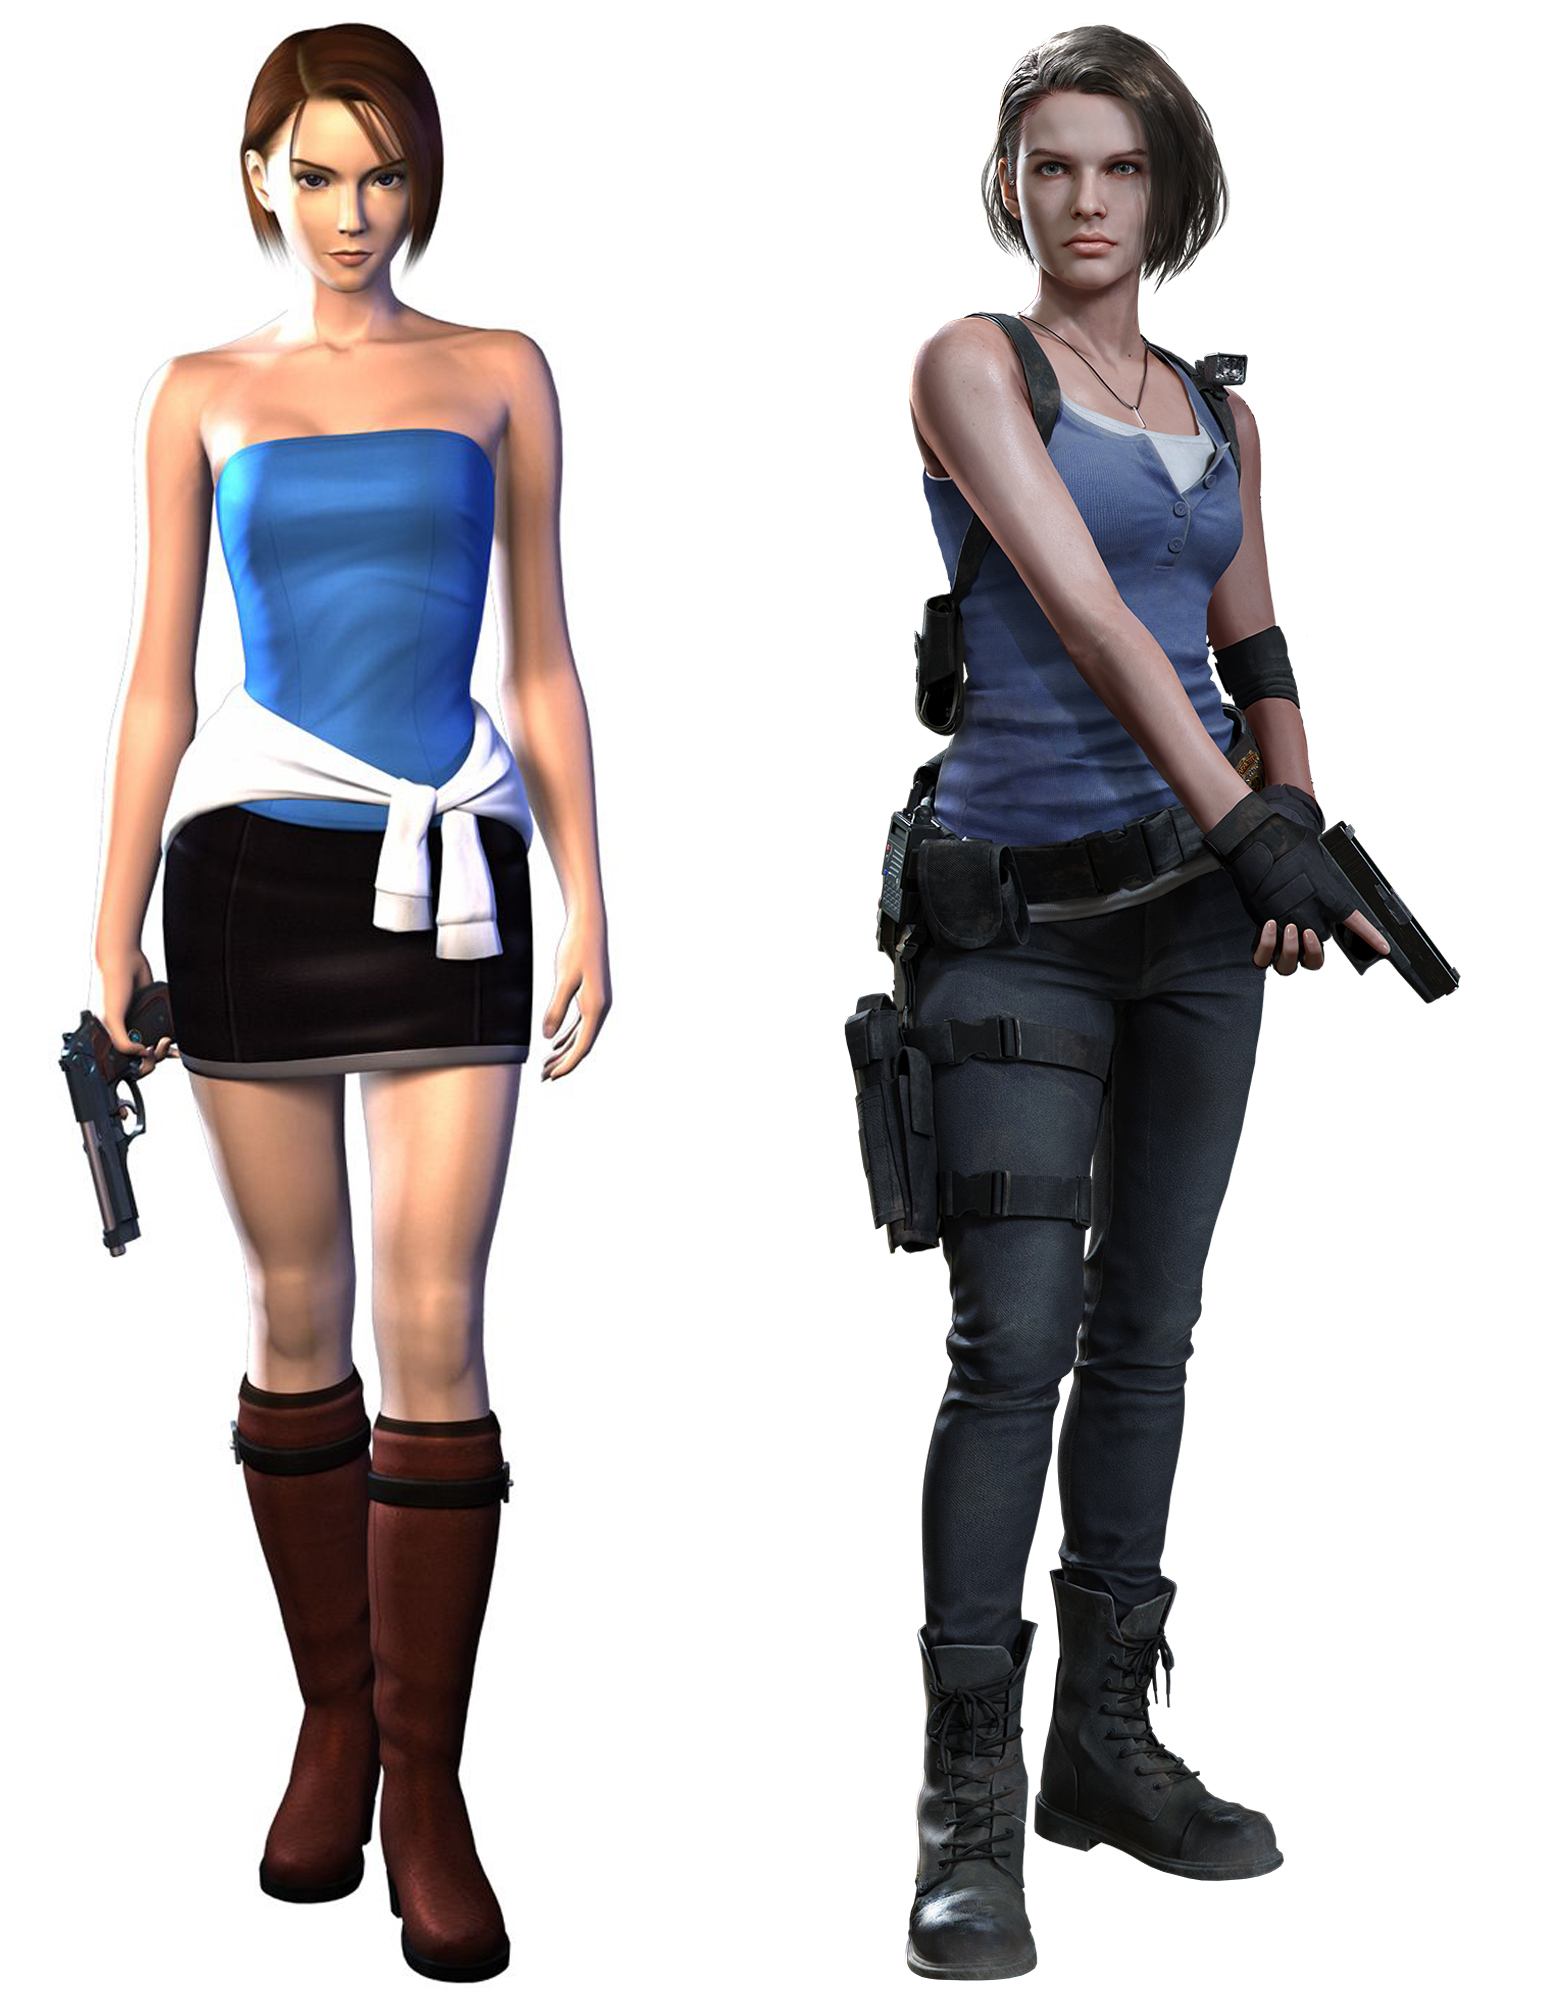 Character models of Jill Valentine in Resident Evil 3 and the RE3 Remake